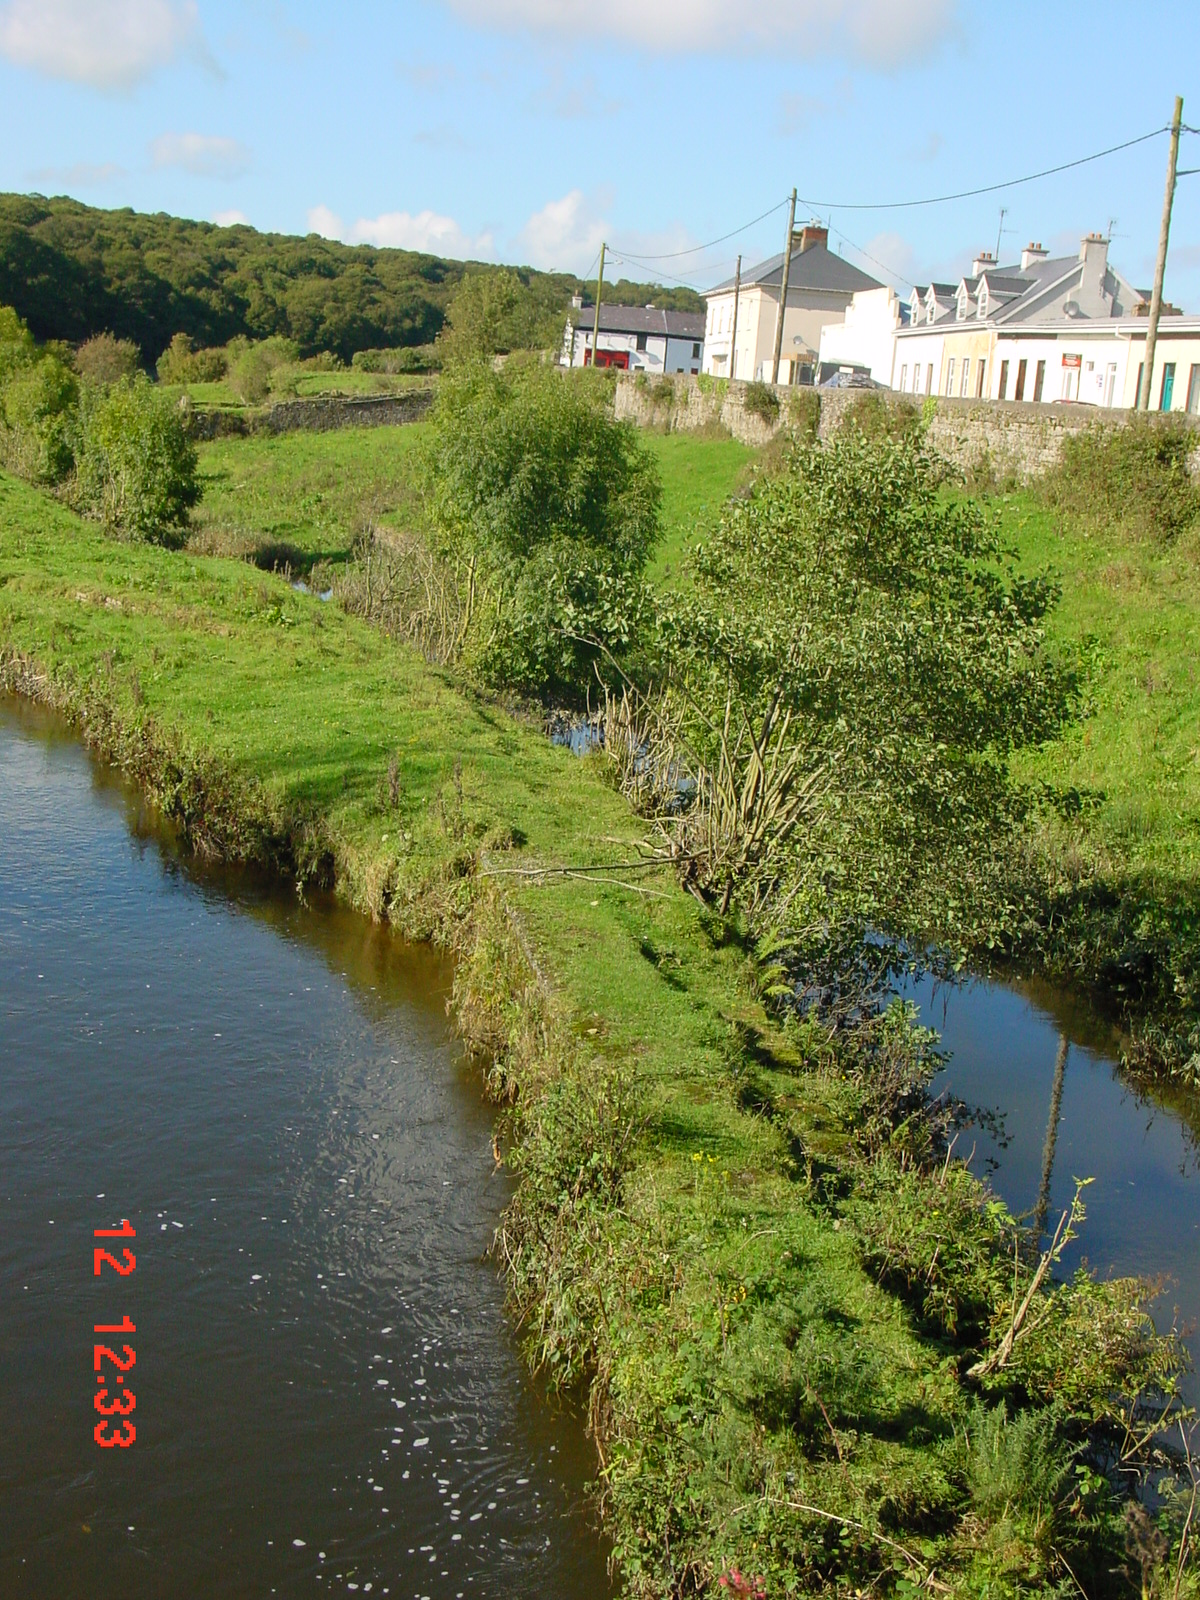 The River Clodiagh to the left, the canal to the right